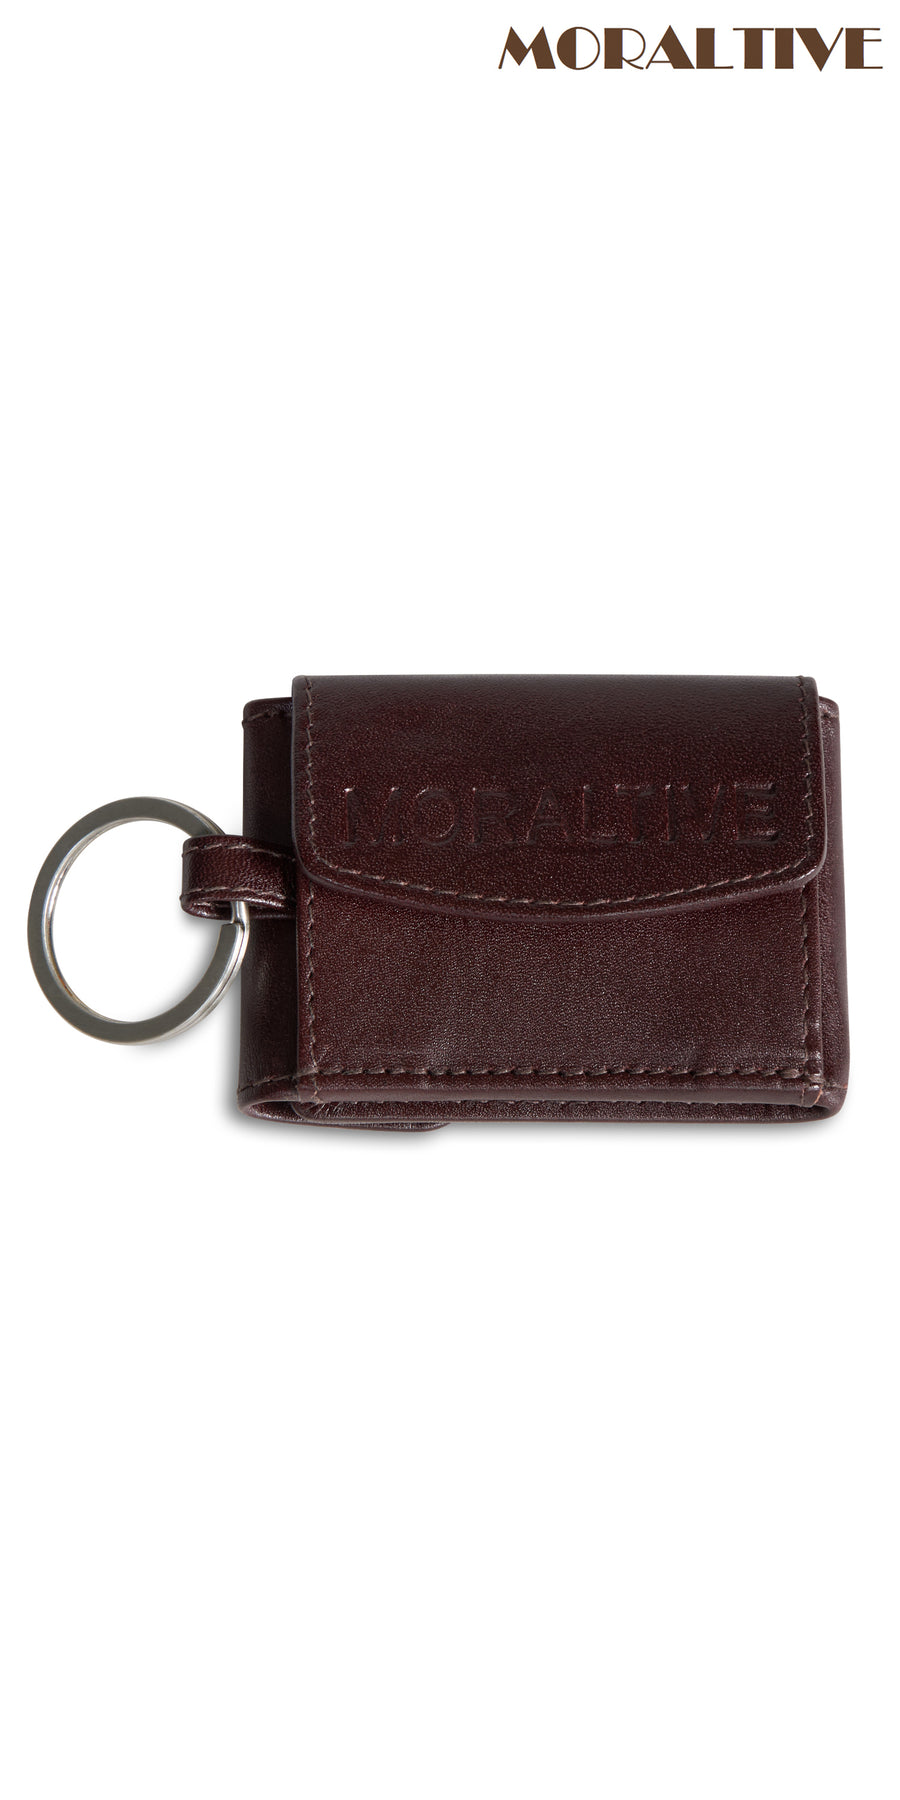 Brown leather keyring with portemonnaie